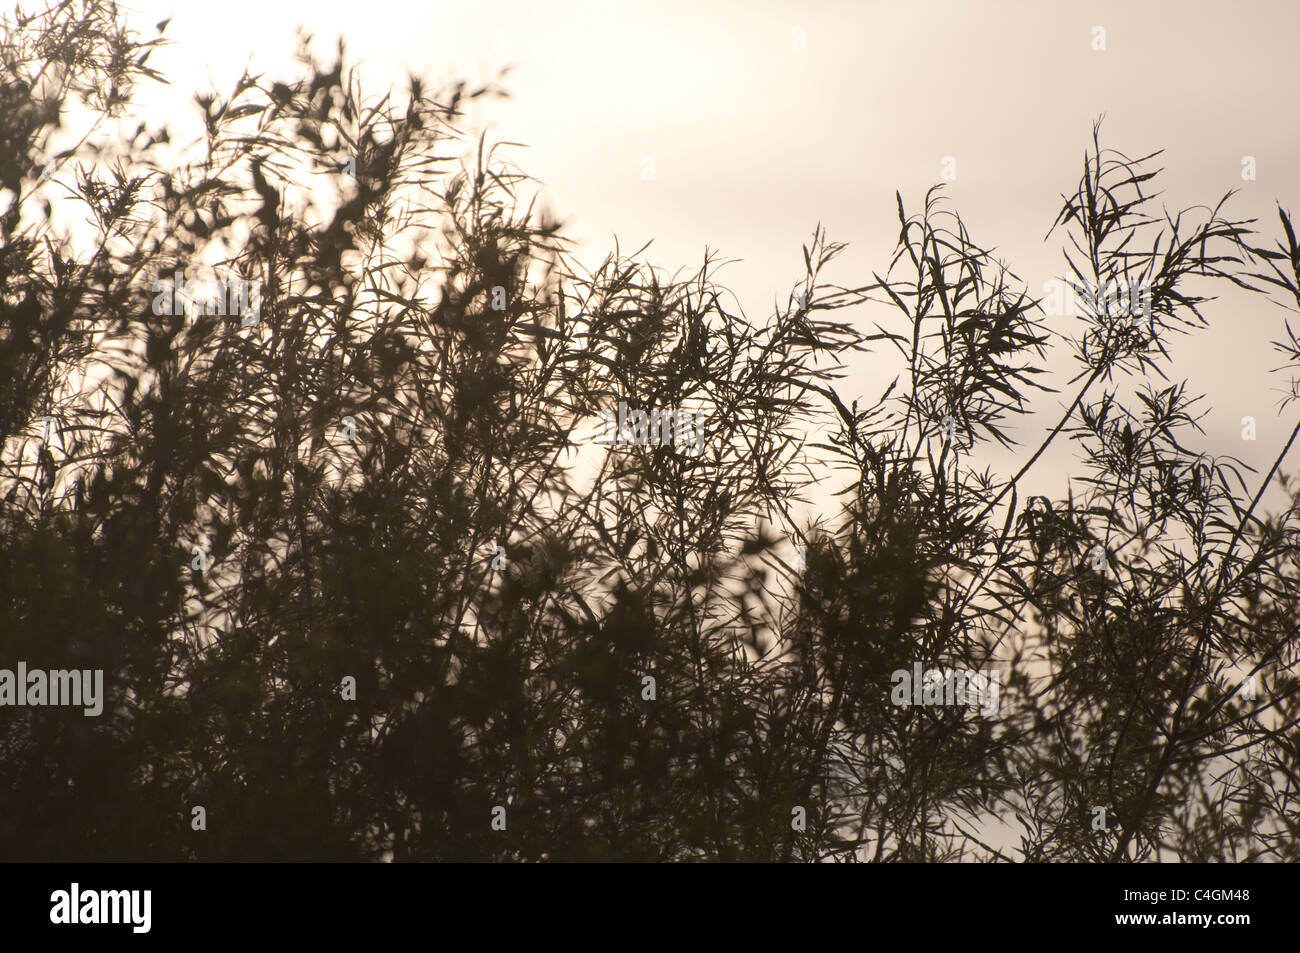 Willow Trees in silhouette with movement and sepia effect. UK - Stock Image